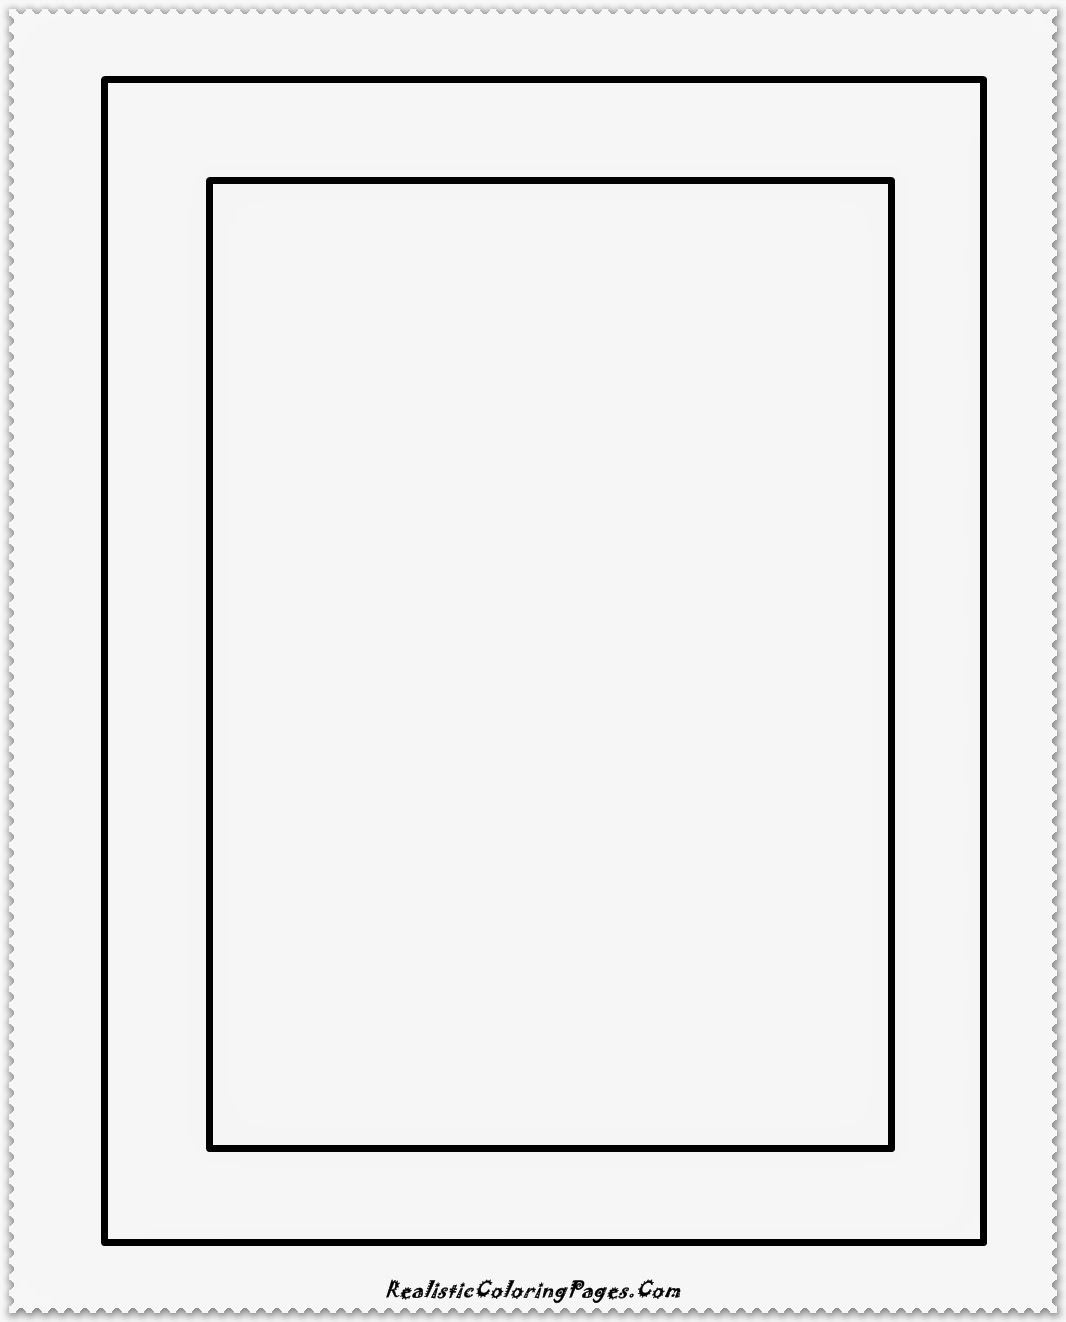 Simple Shape Coloring Pages Realistic